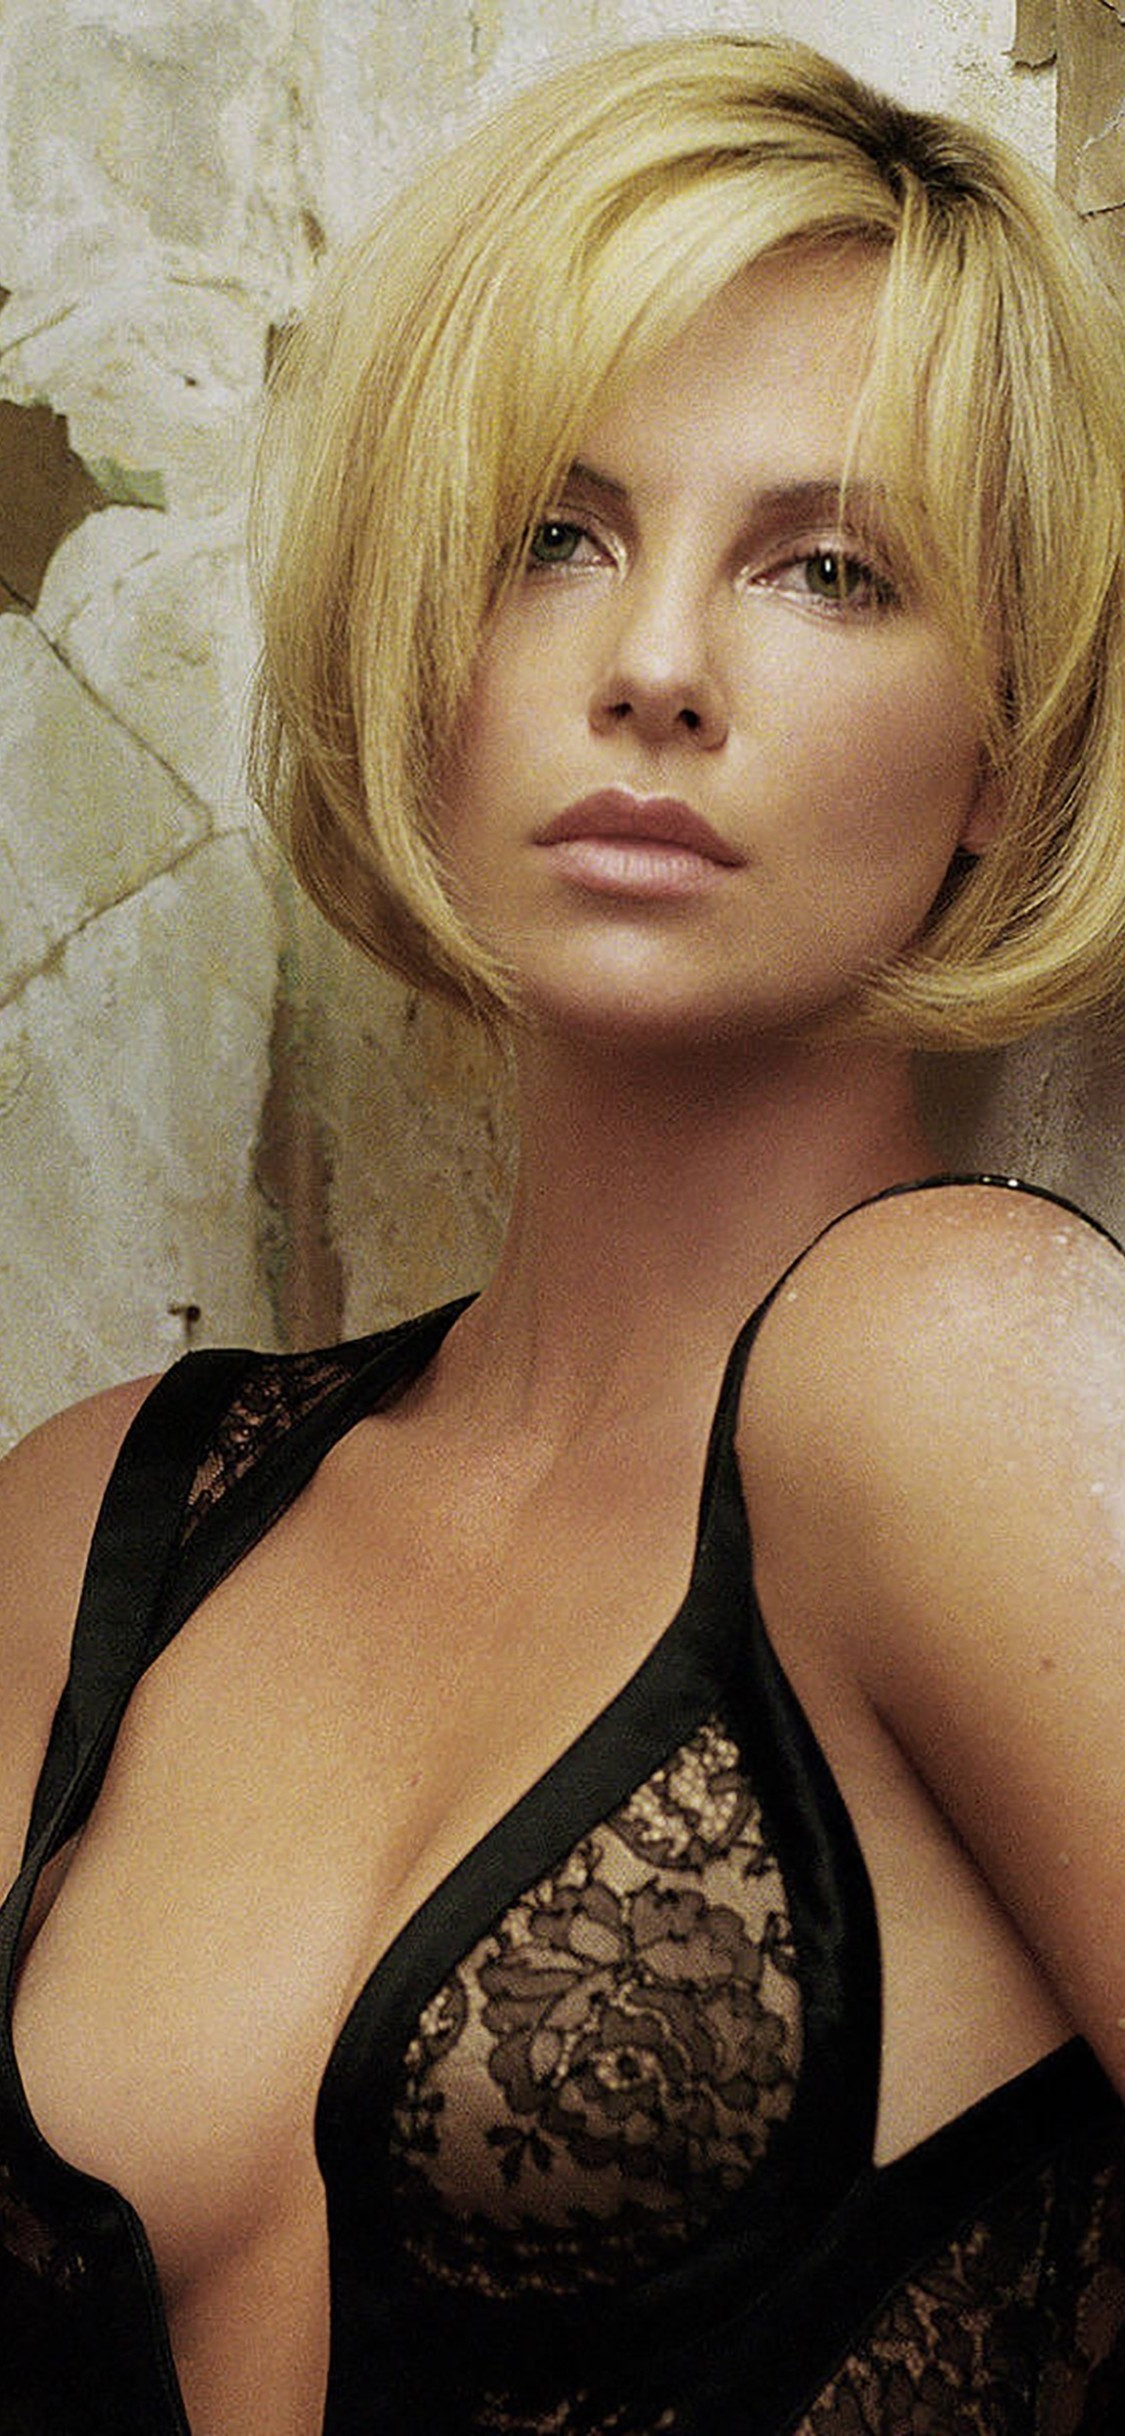 1125x2436 Charlize Theron Iphone Wallpaper